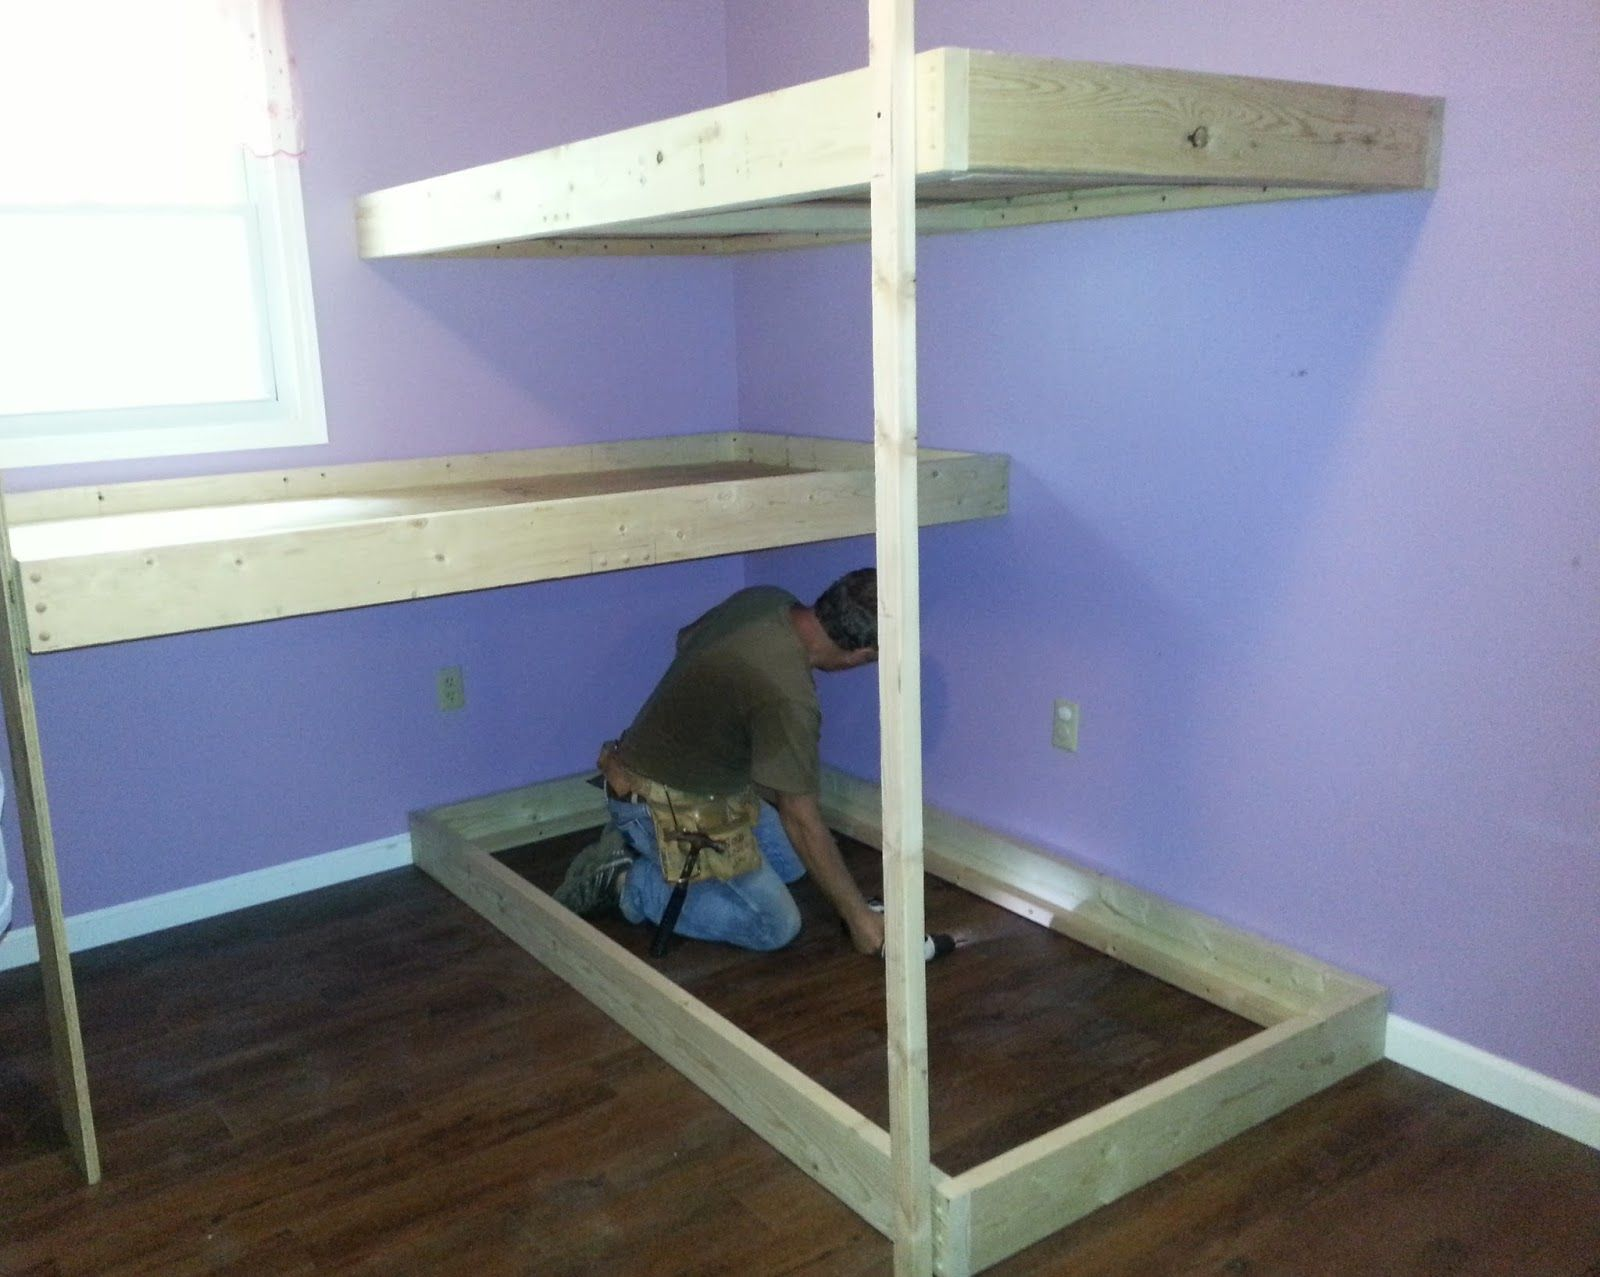 Cool Bunk Beds Diy Instructions For A Cool Bunk Bed Girls New Room